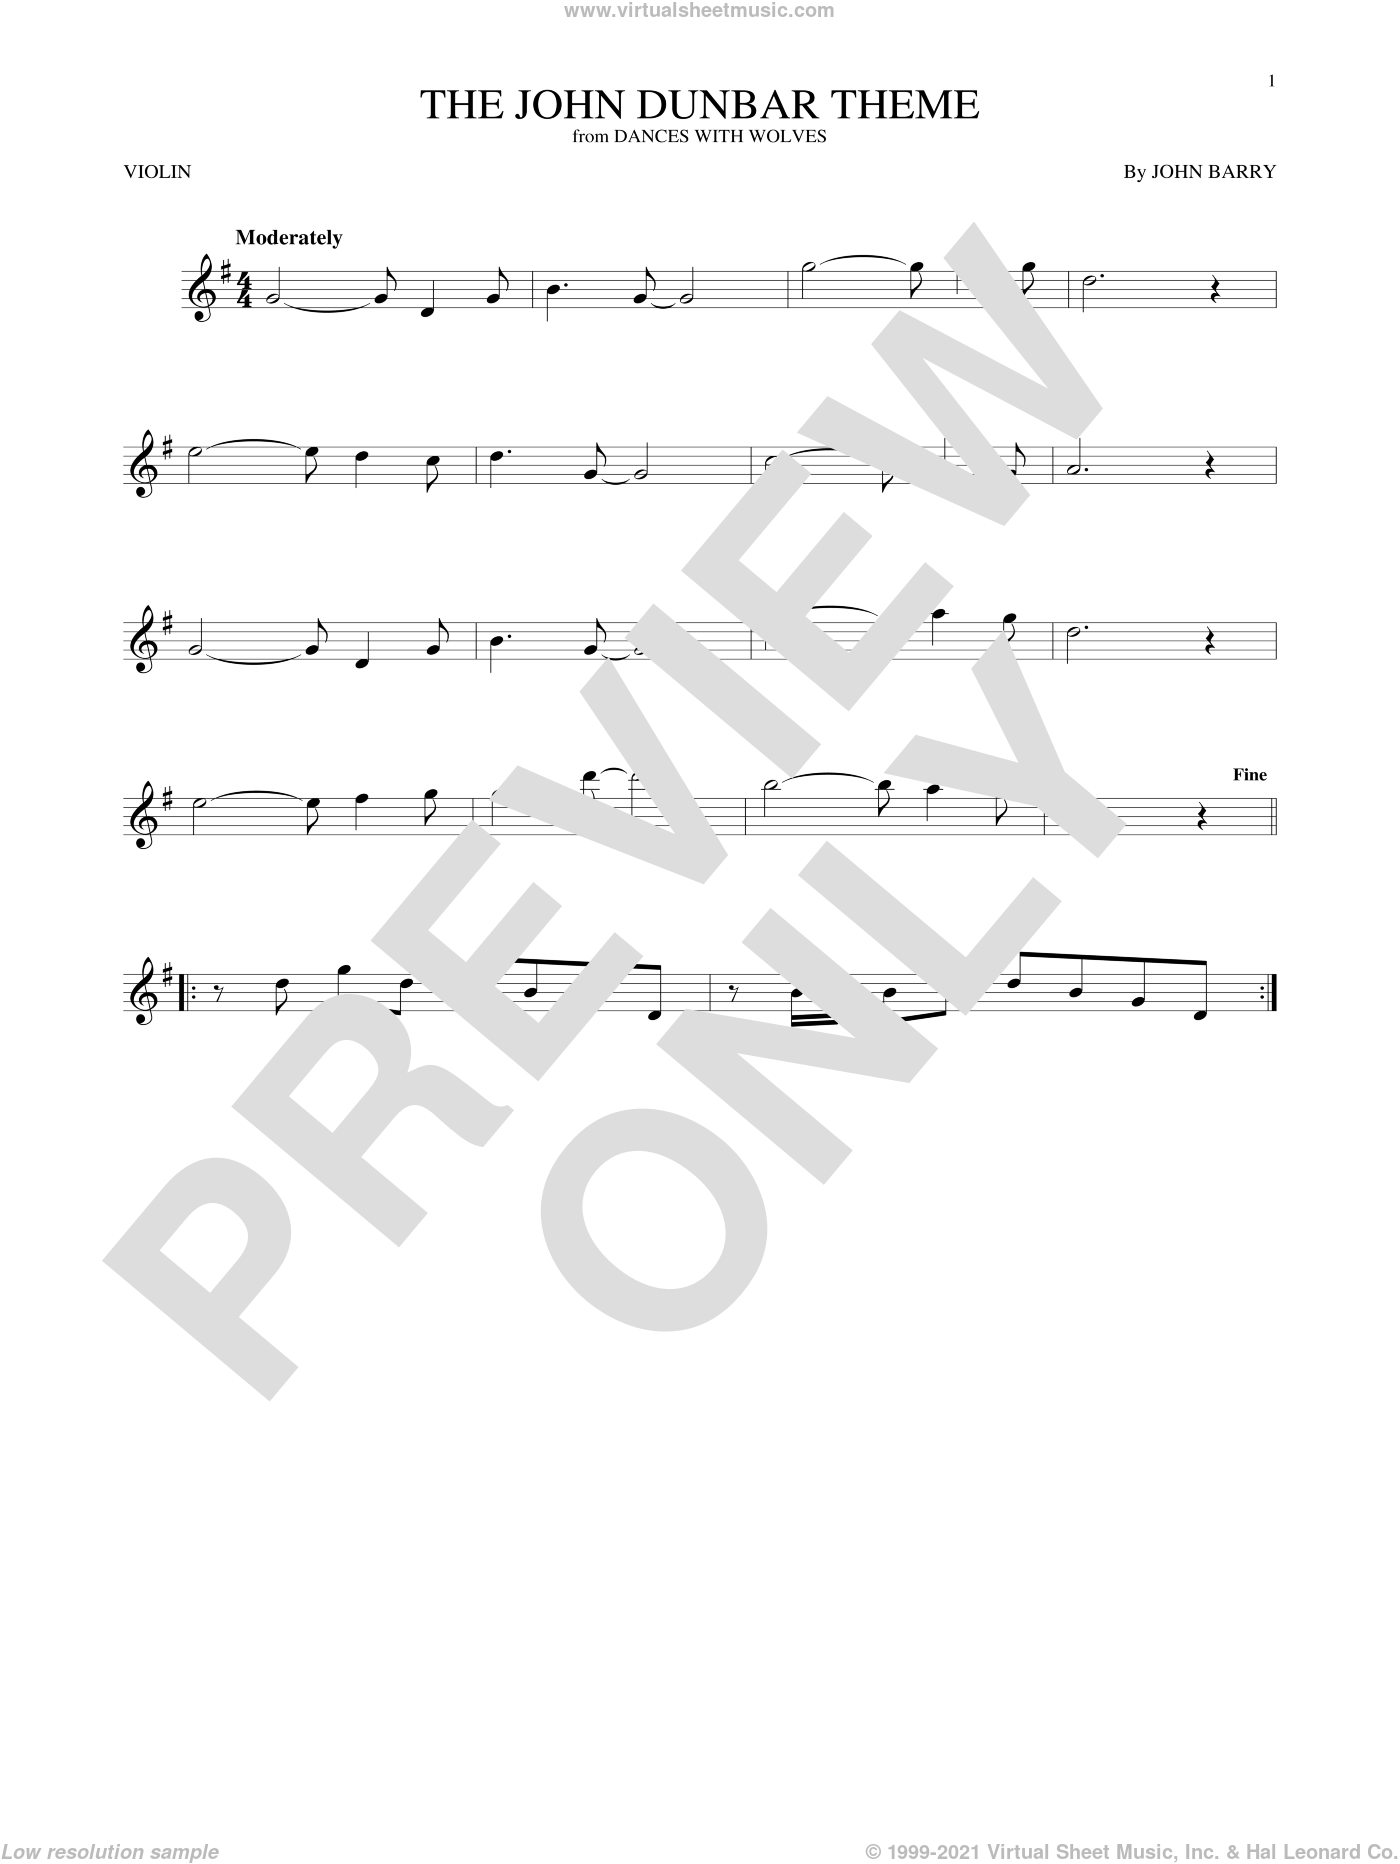 The John Dunbar Theme sheet music for violin solo by John Barry, intermediate skill level